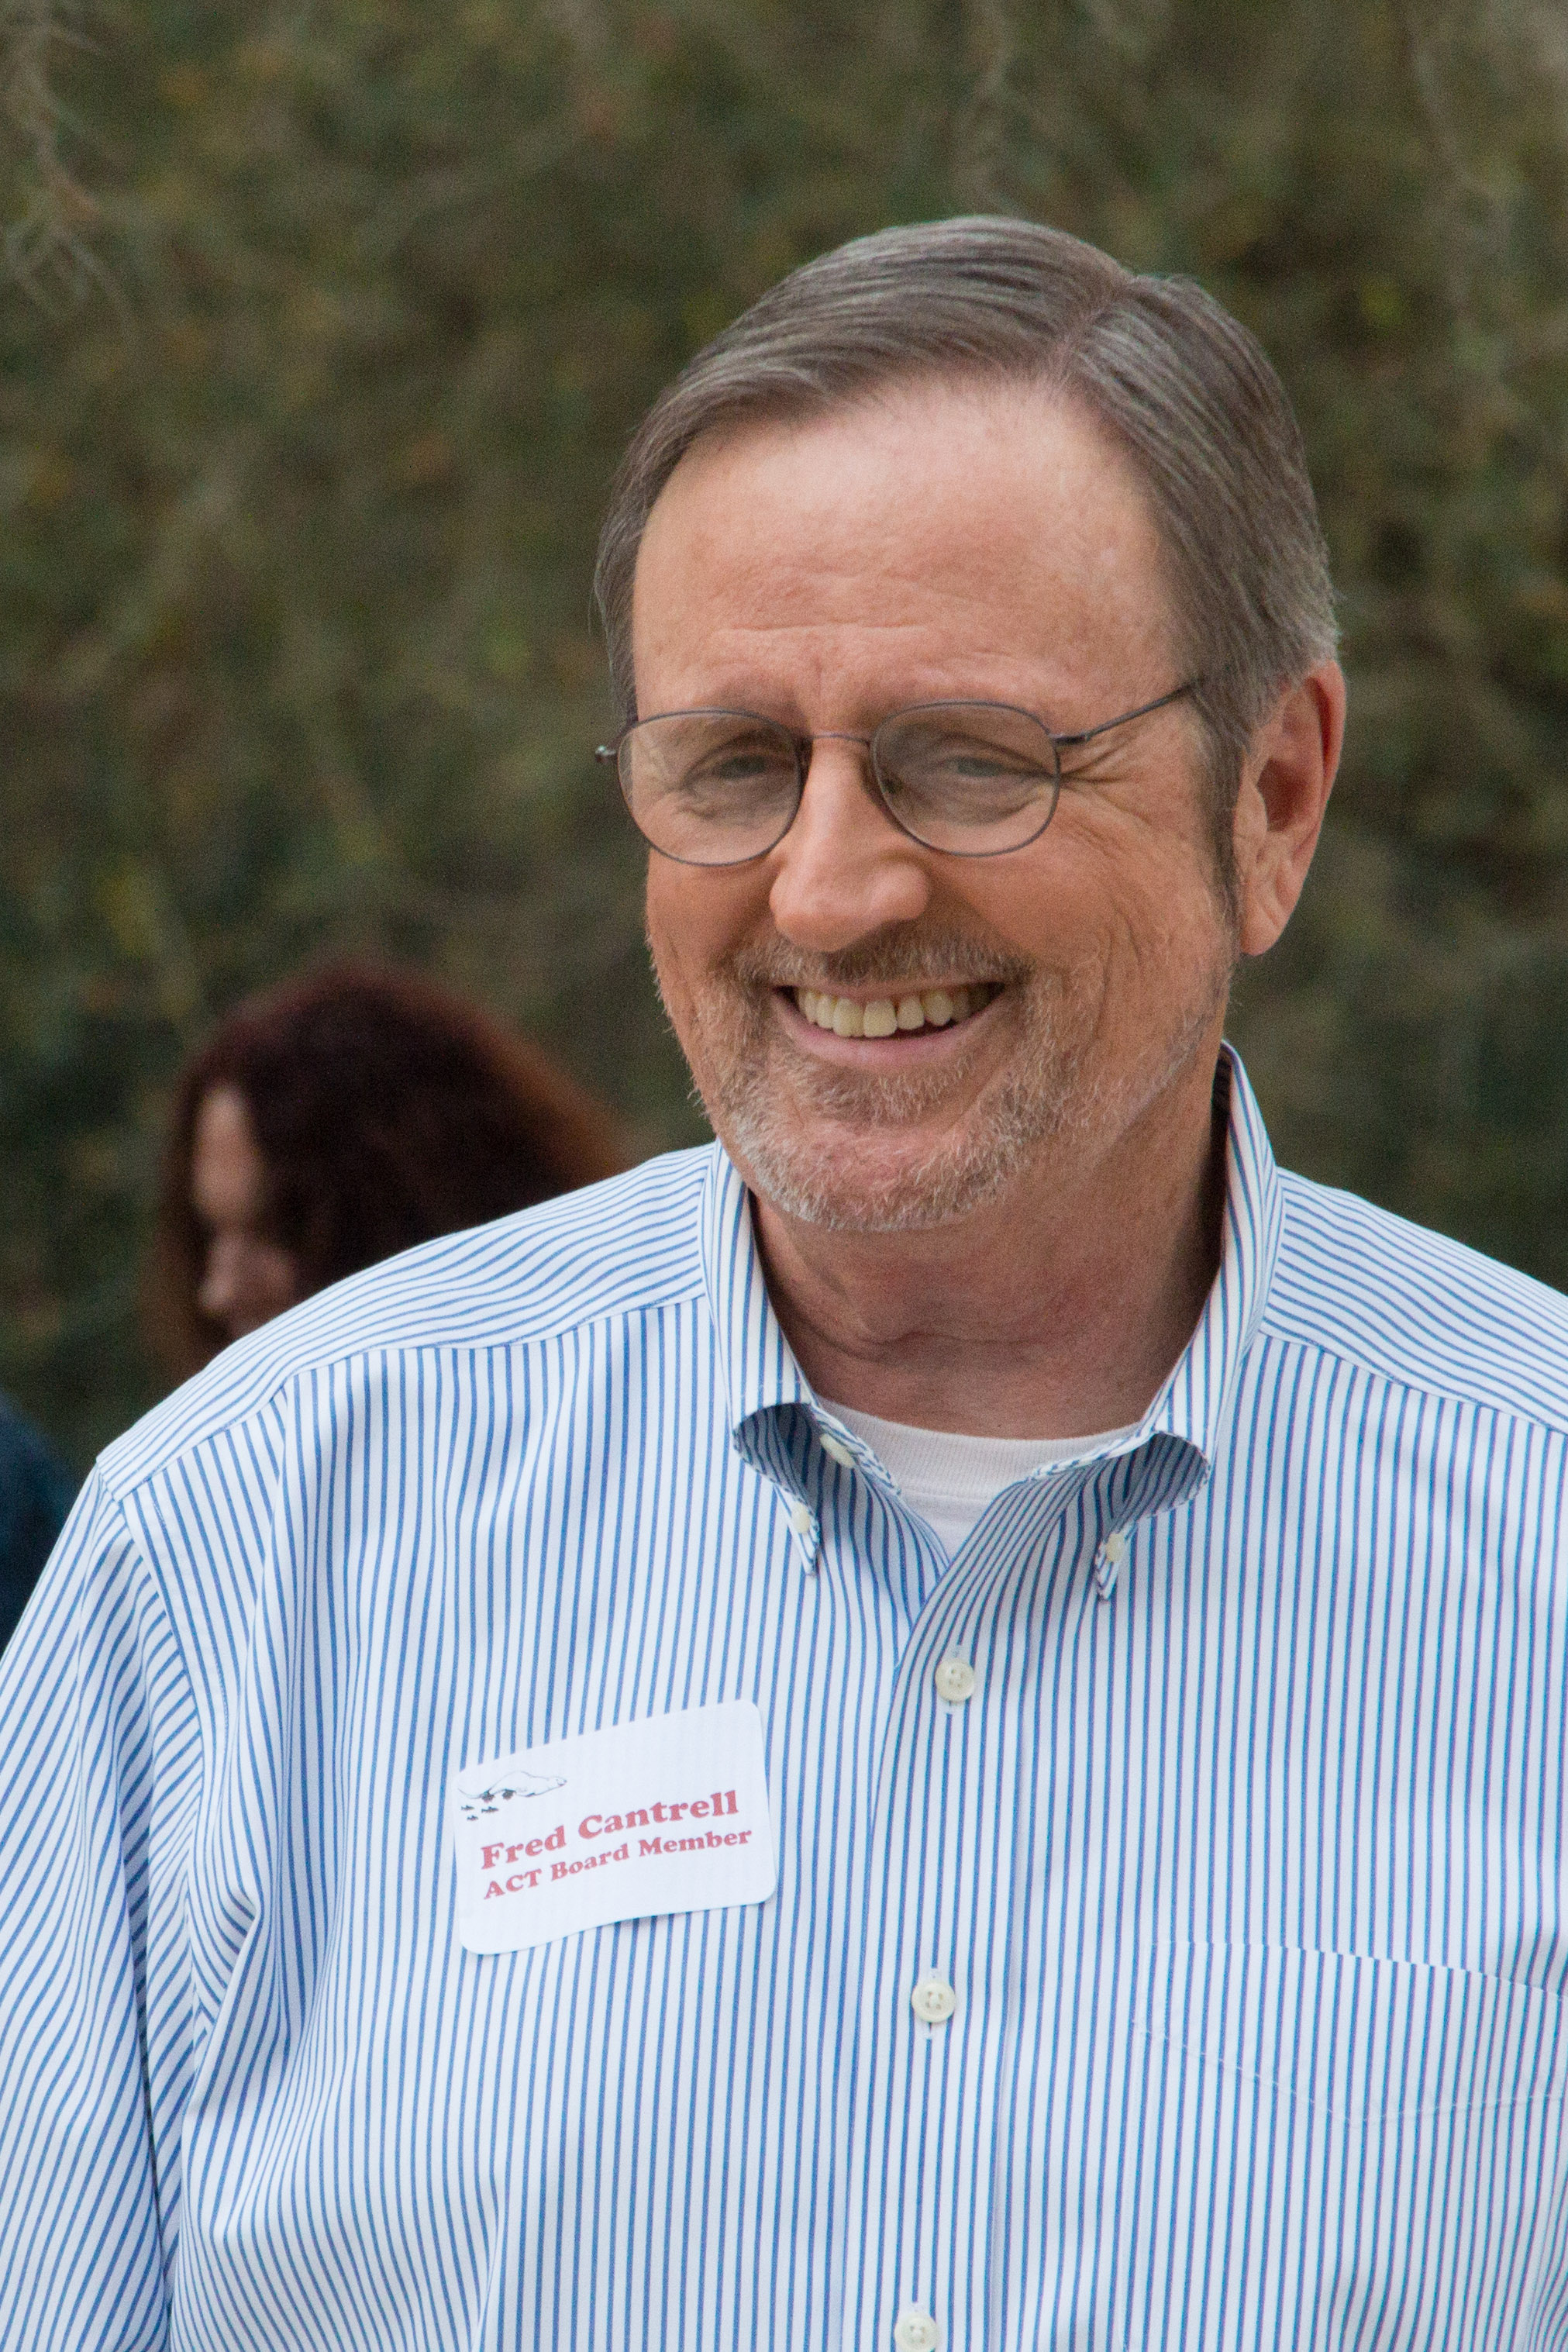 Fred Cantrell Photo.jpg